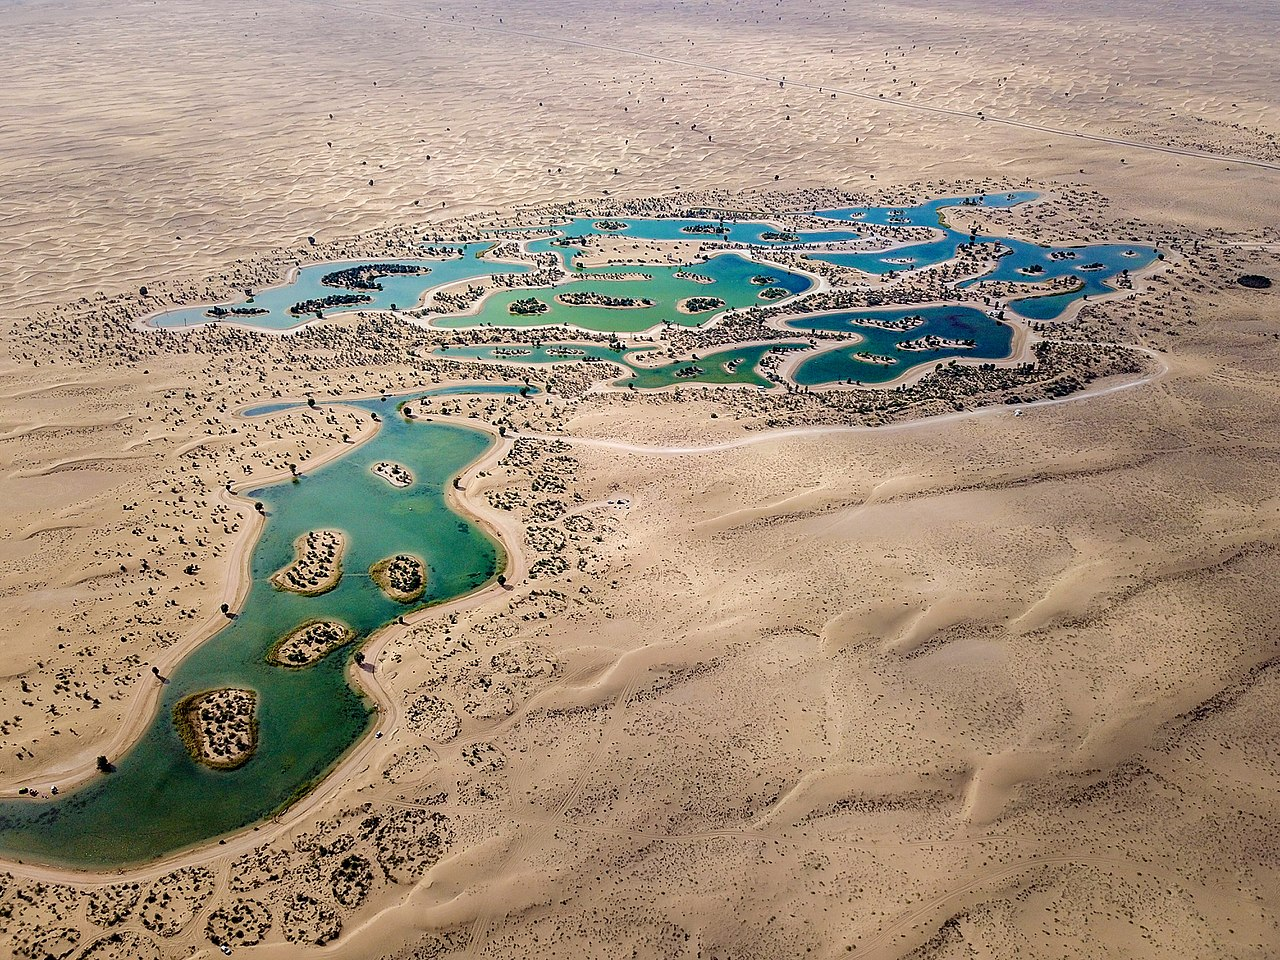 File:Al Qudra Lakes from Above.jpg - Wikimedia Commons